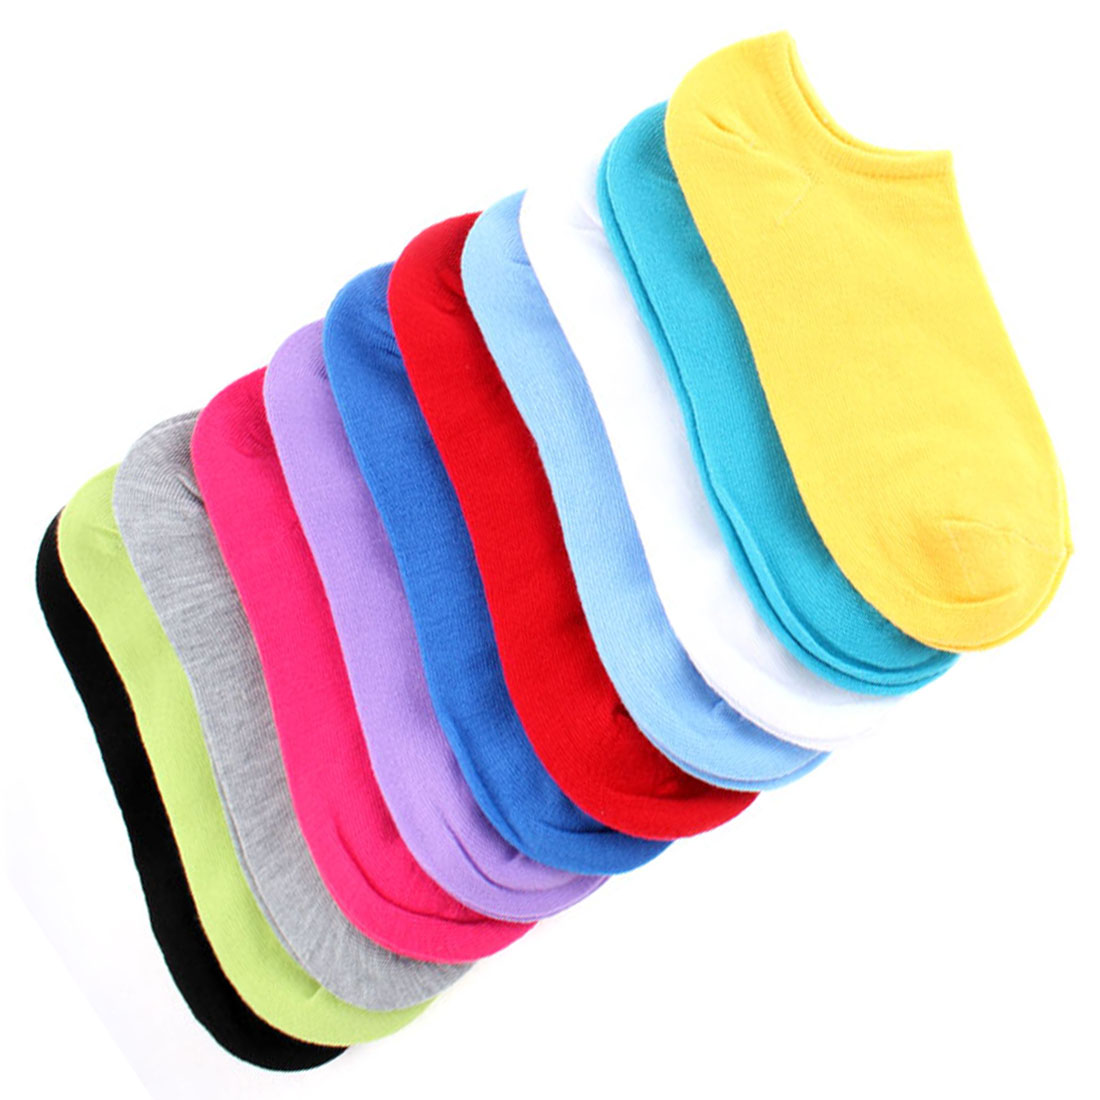 Woman Cotton Blends Elastic Cuff Casual Ankle Socks Multicolor 12 Pairs